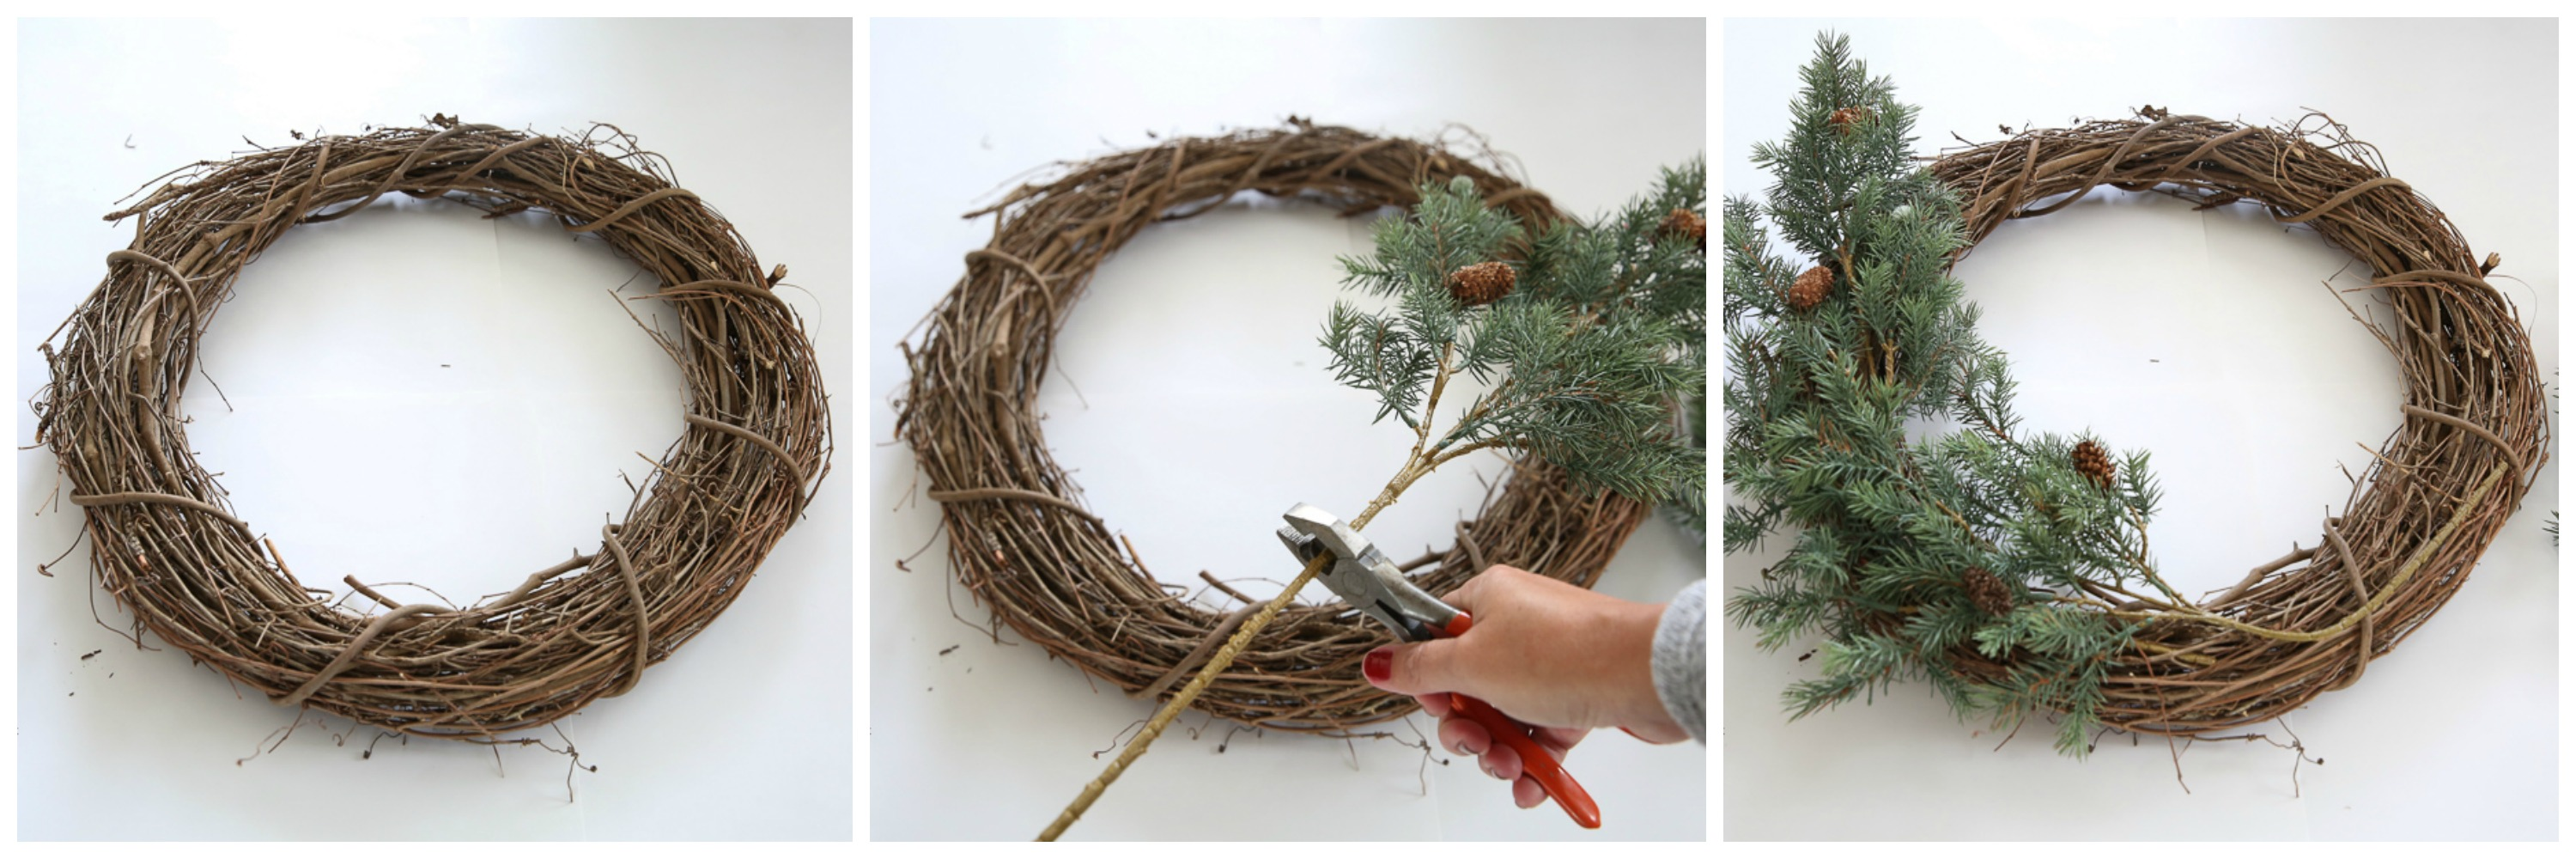 How To Make A Rustic Farmhouse Wreath Step By Step Tutorial